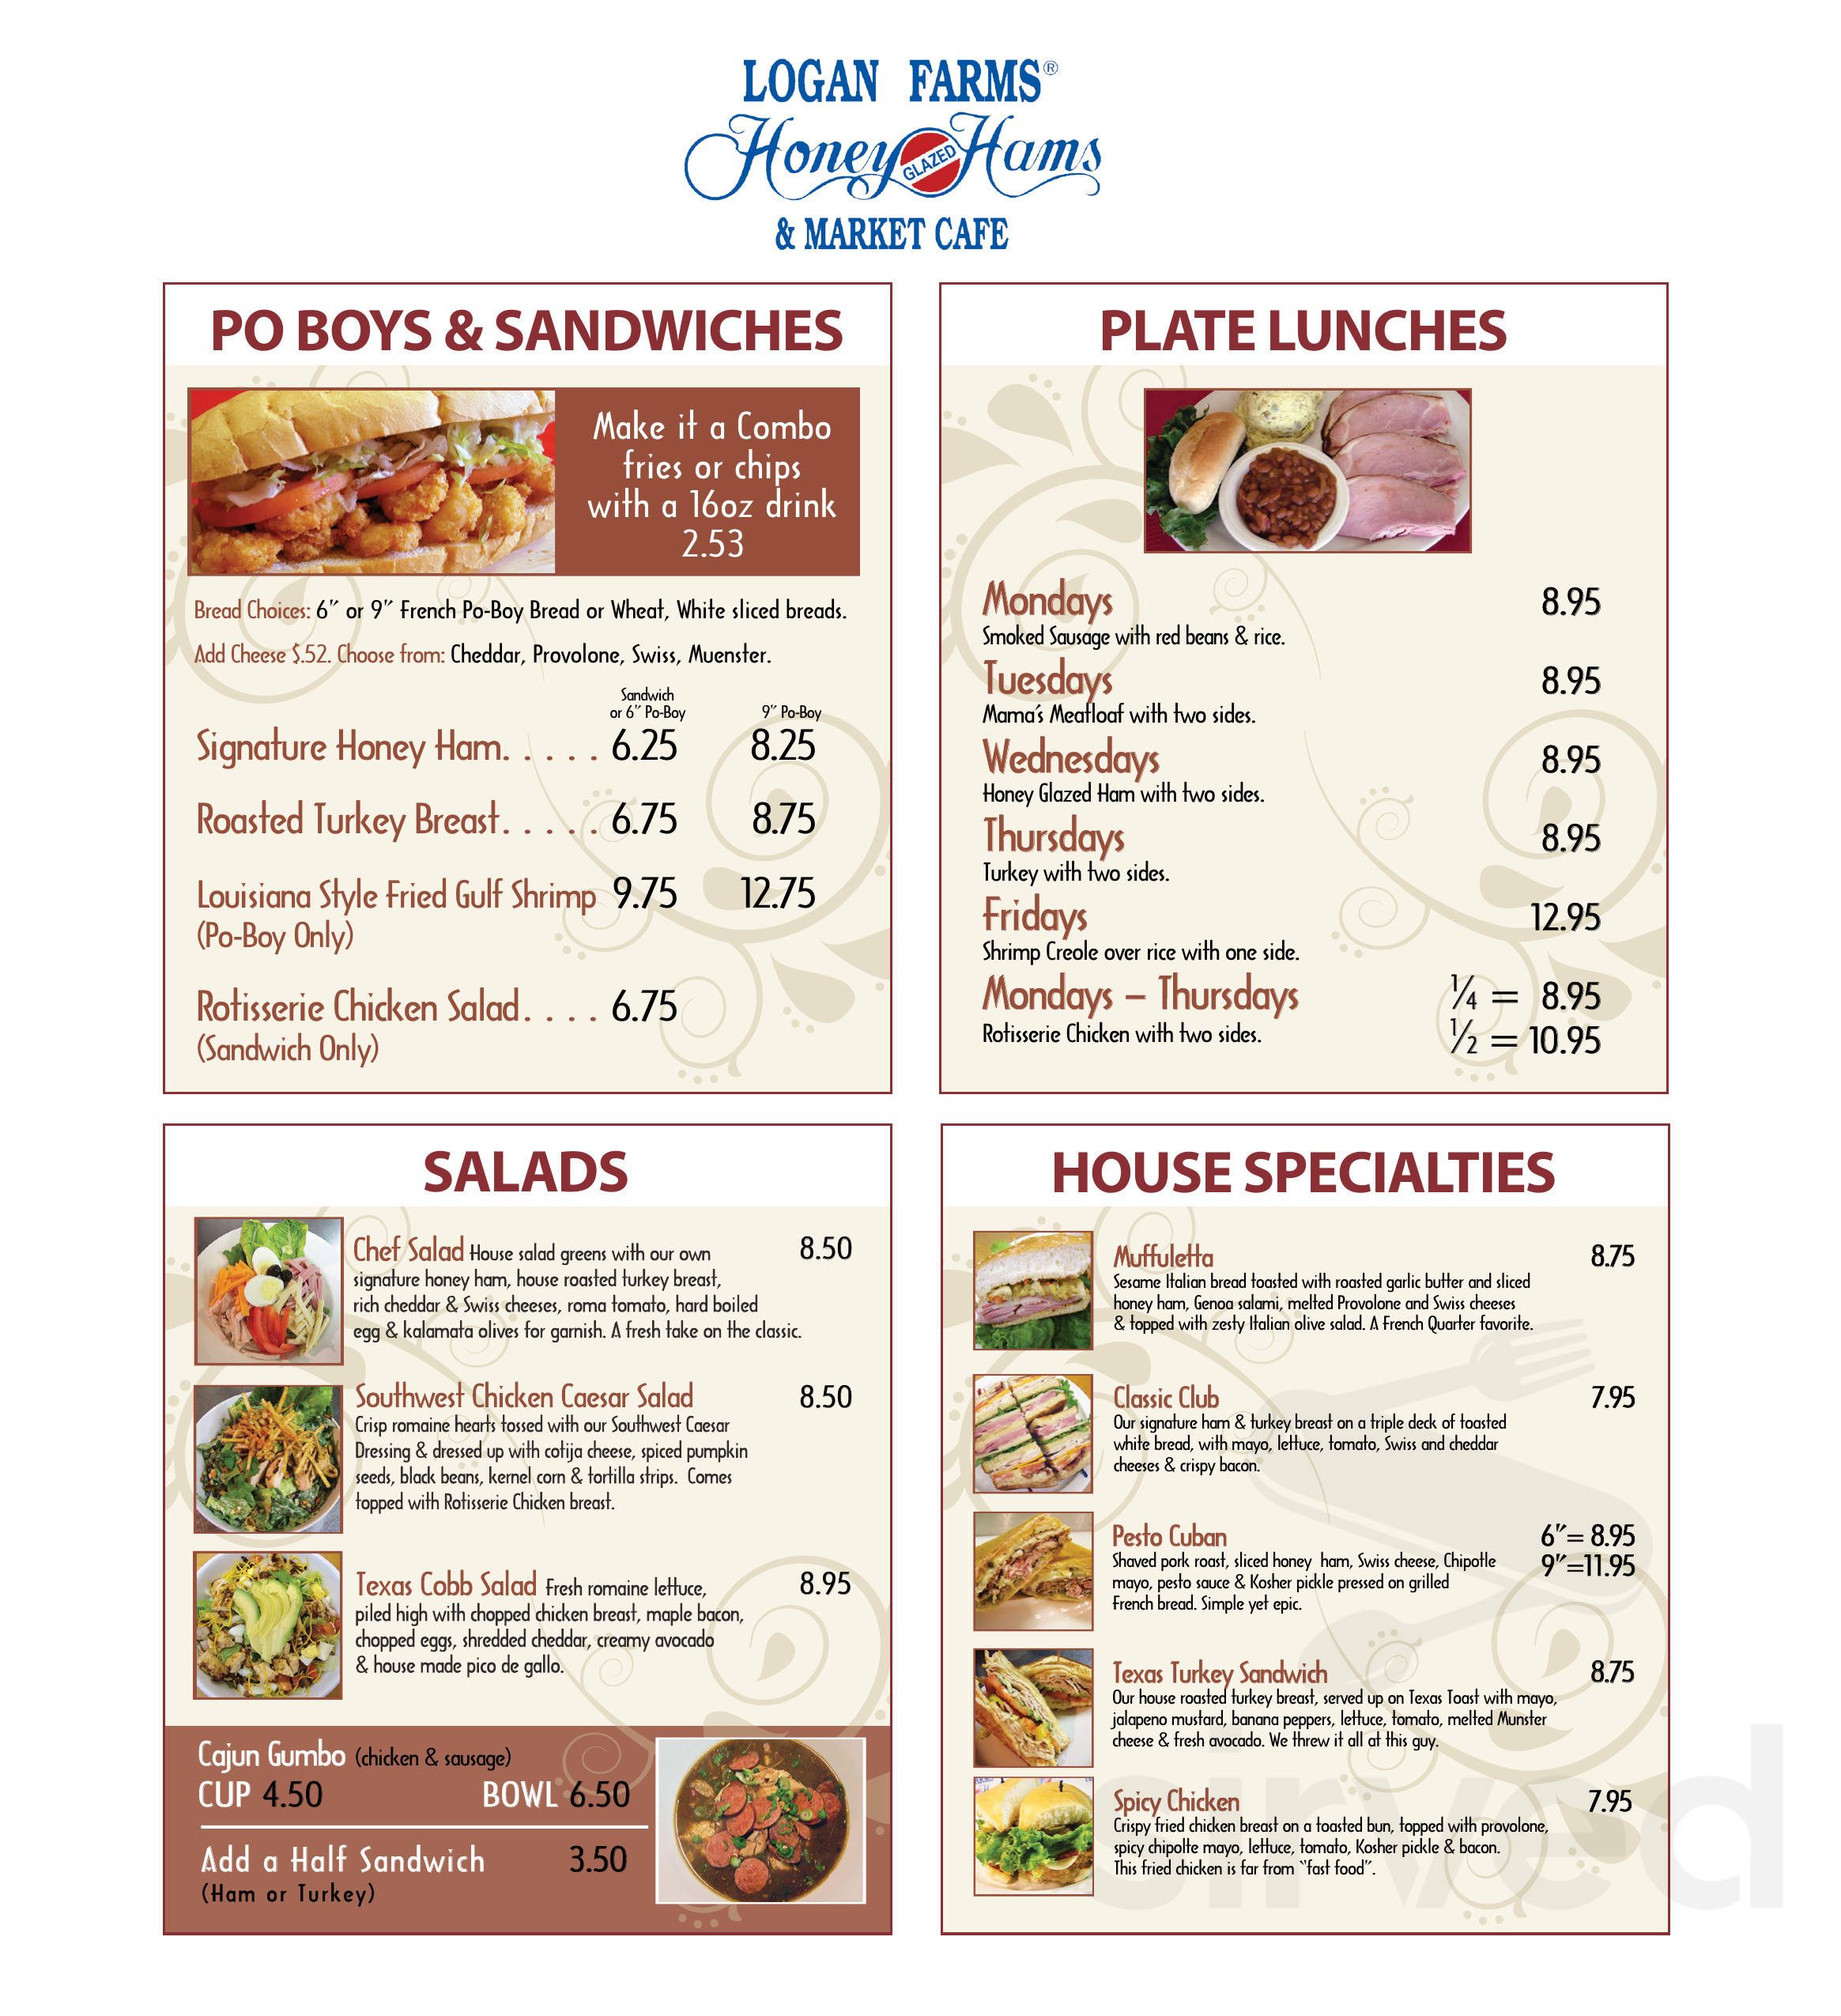 Logan Farms Honey Glazed Hams Market Café Menu In Houston Texas